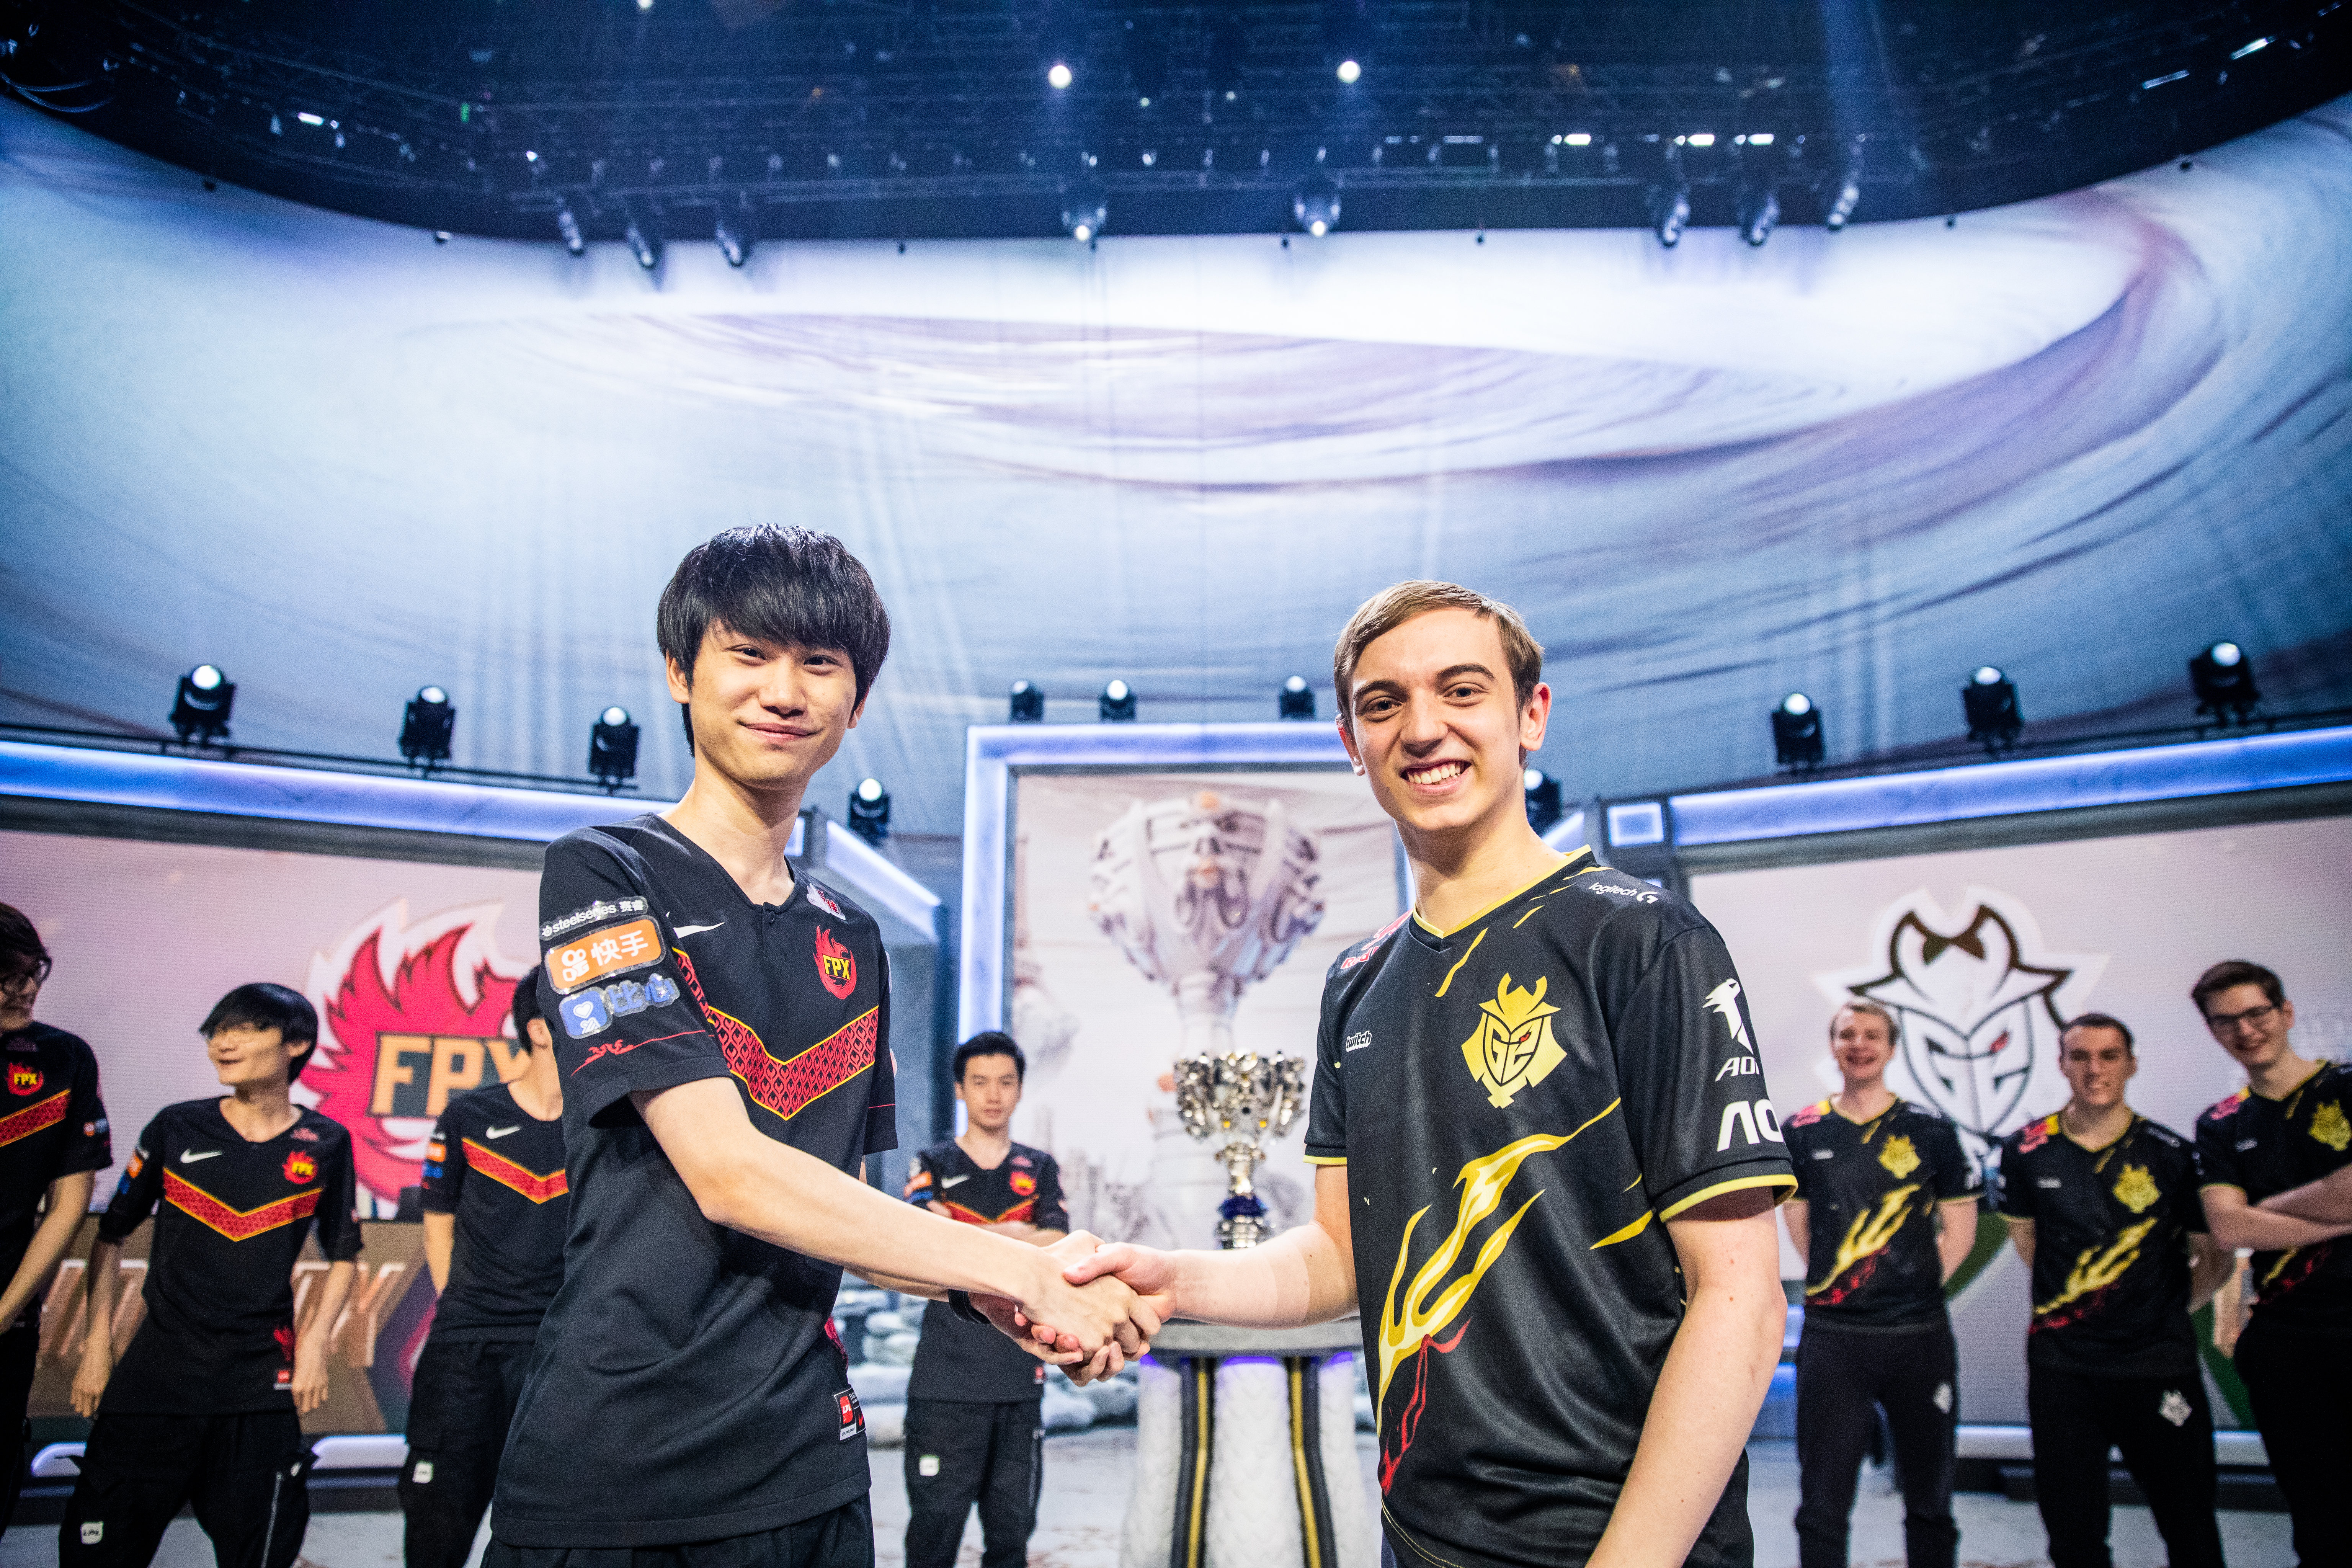 The FunPlus Phoenix and G2 Esports team captains shake hands